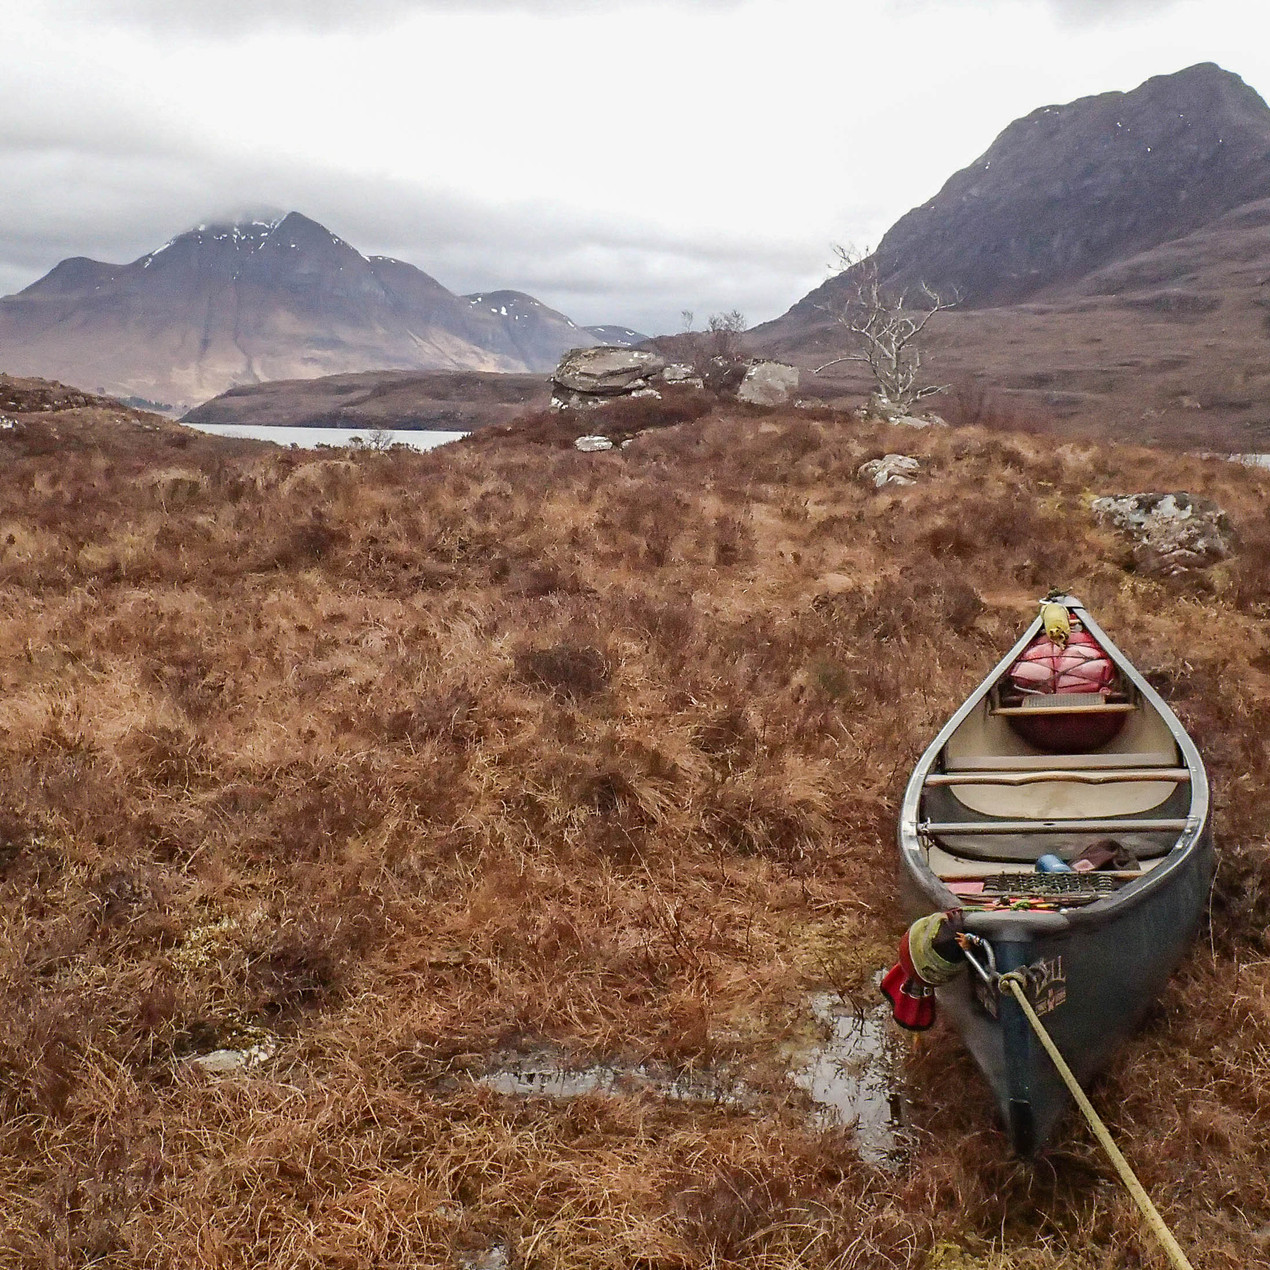 Dragging canoes across the highlands